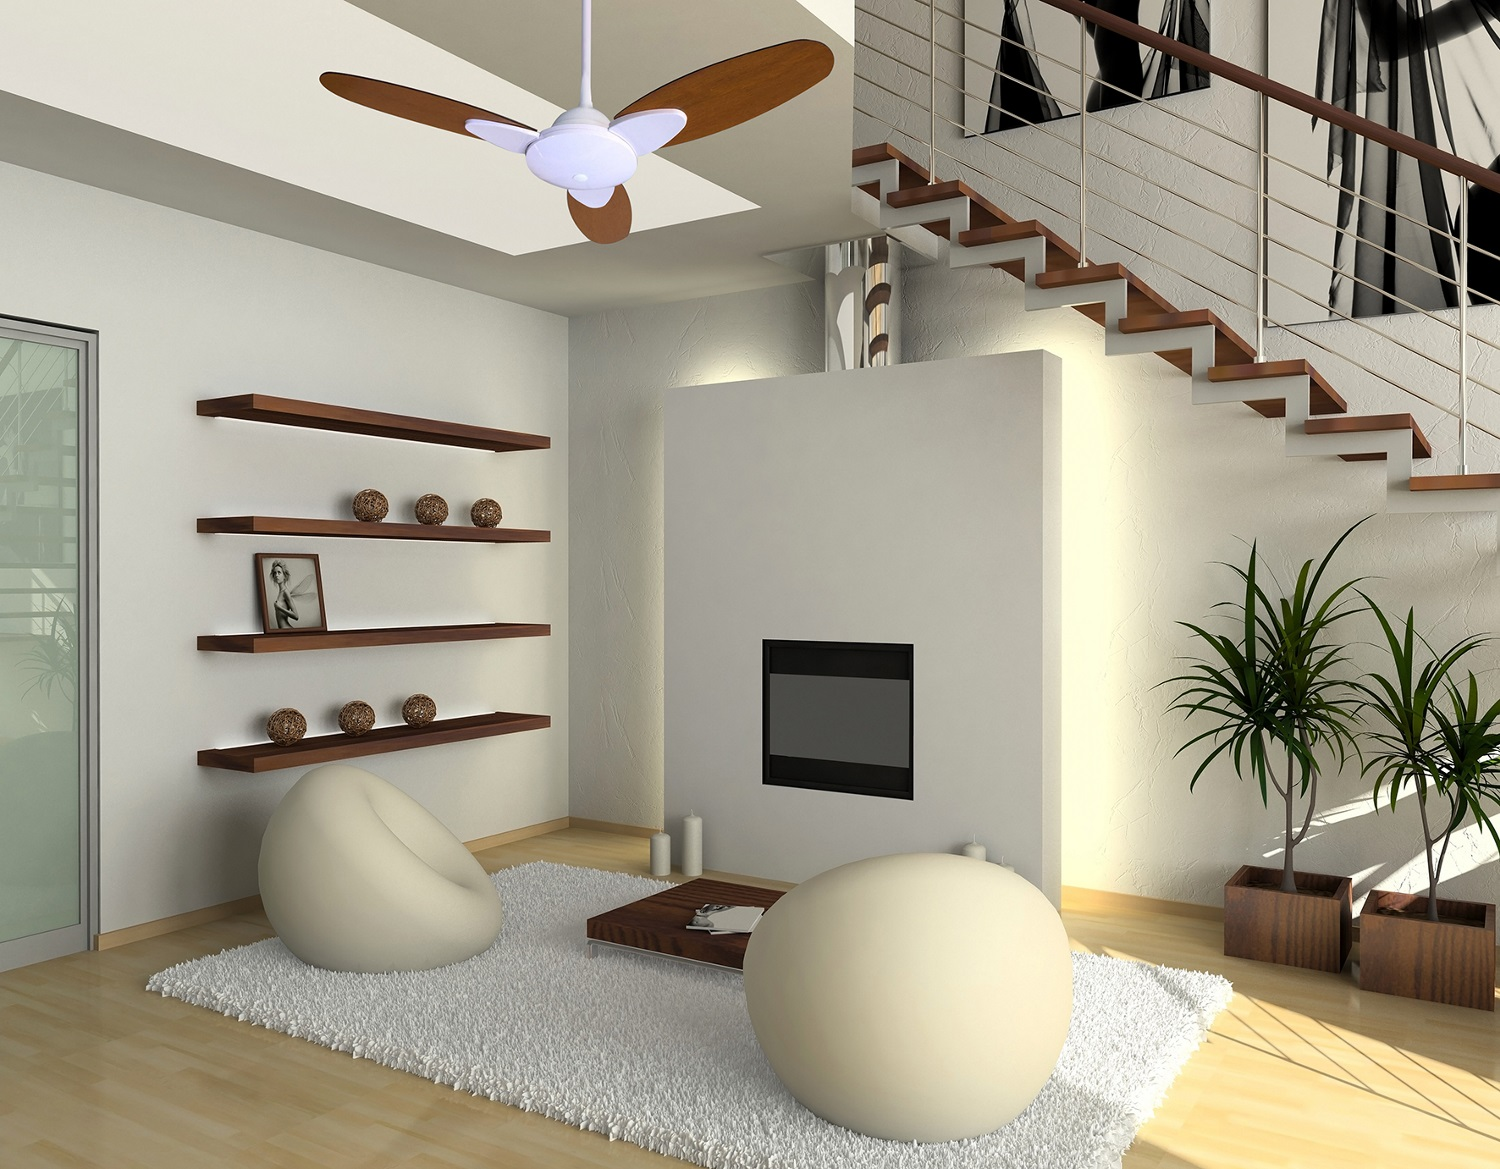 Ceiling fans - glossary of terms from Solent